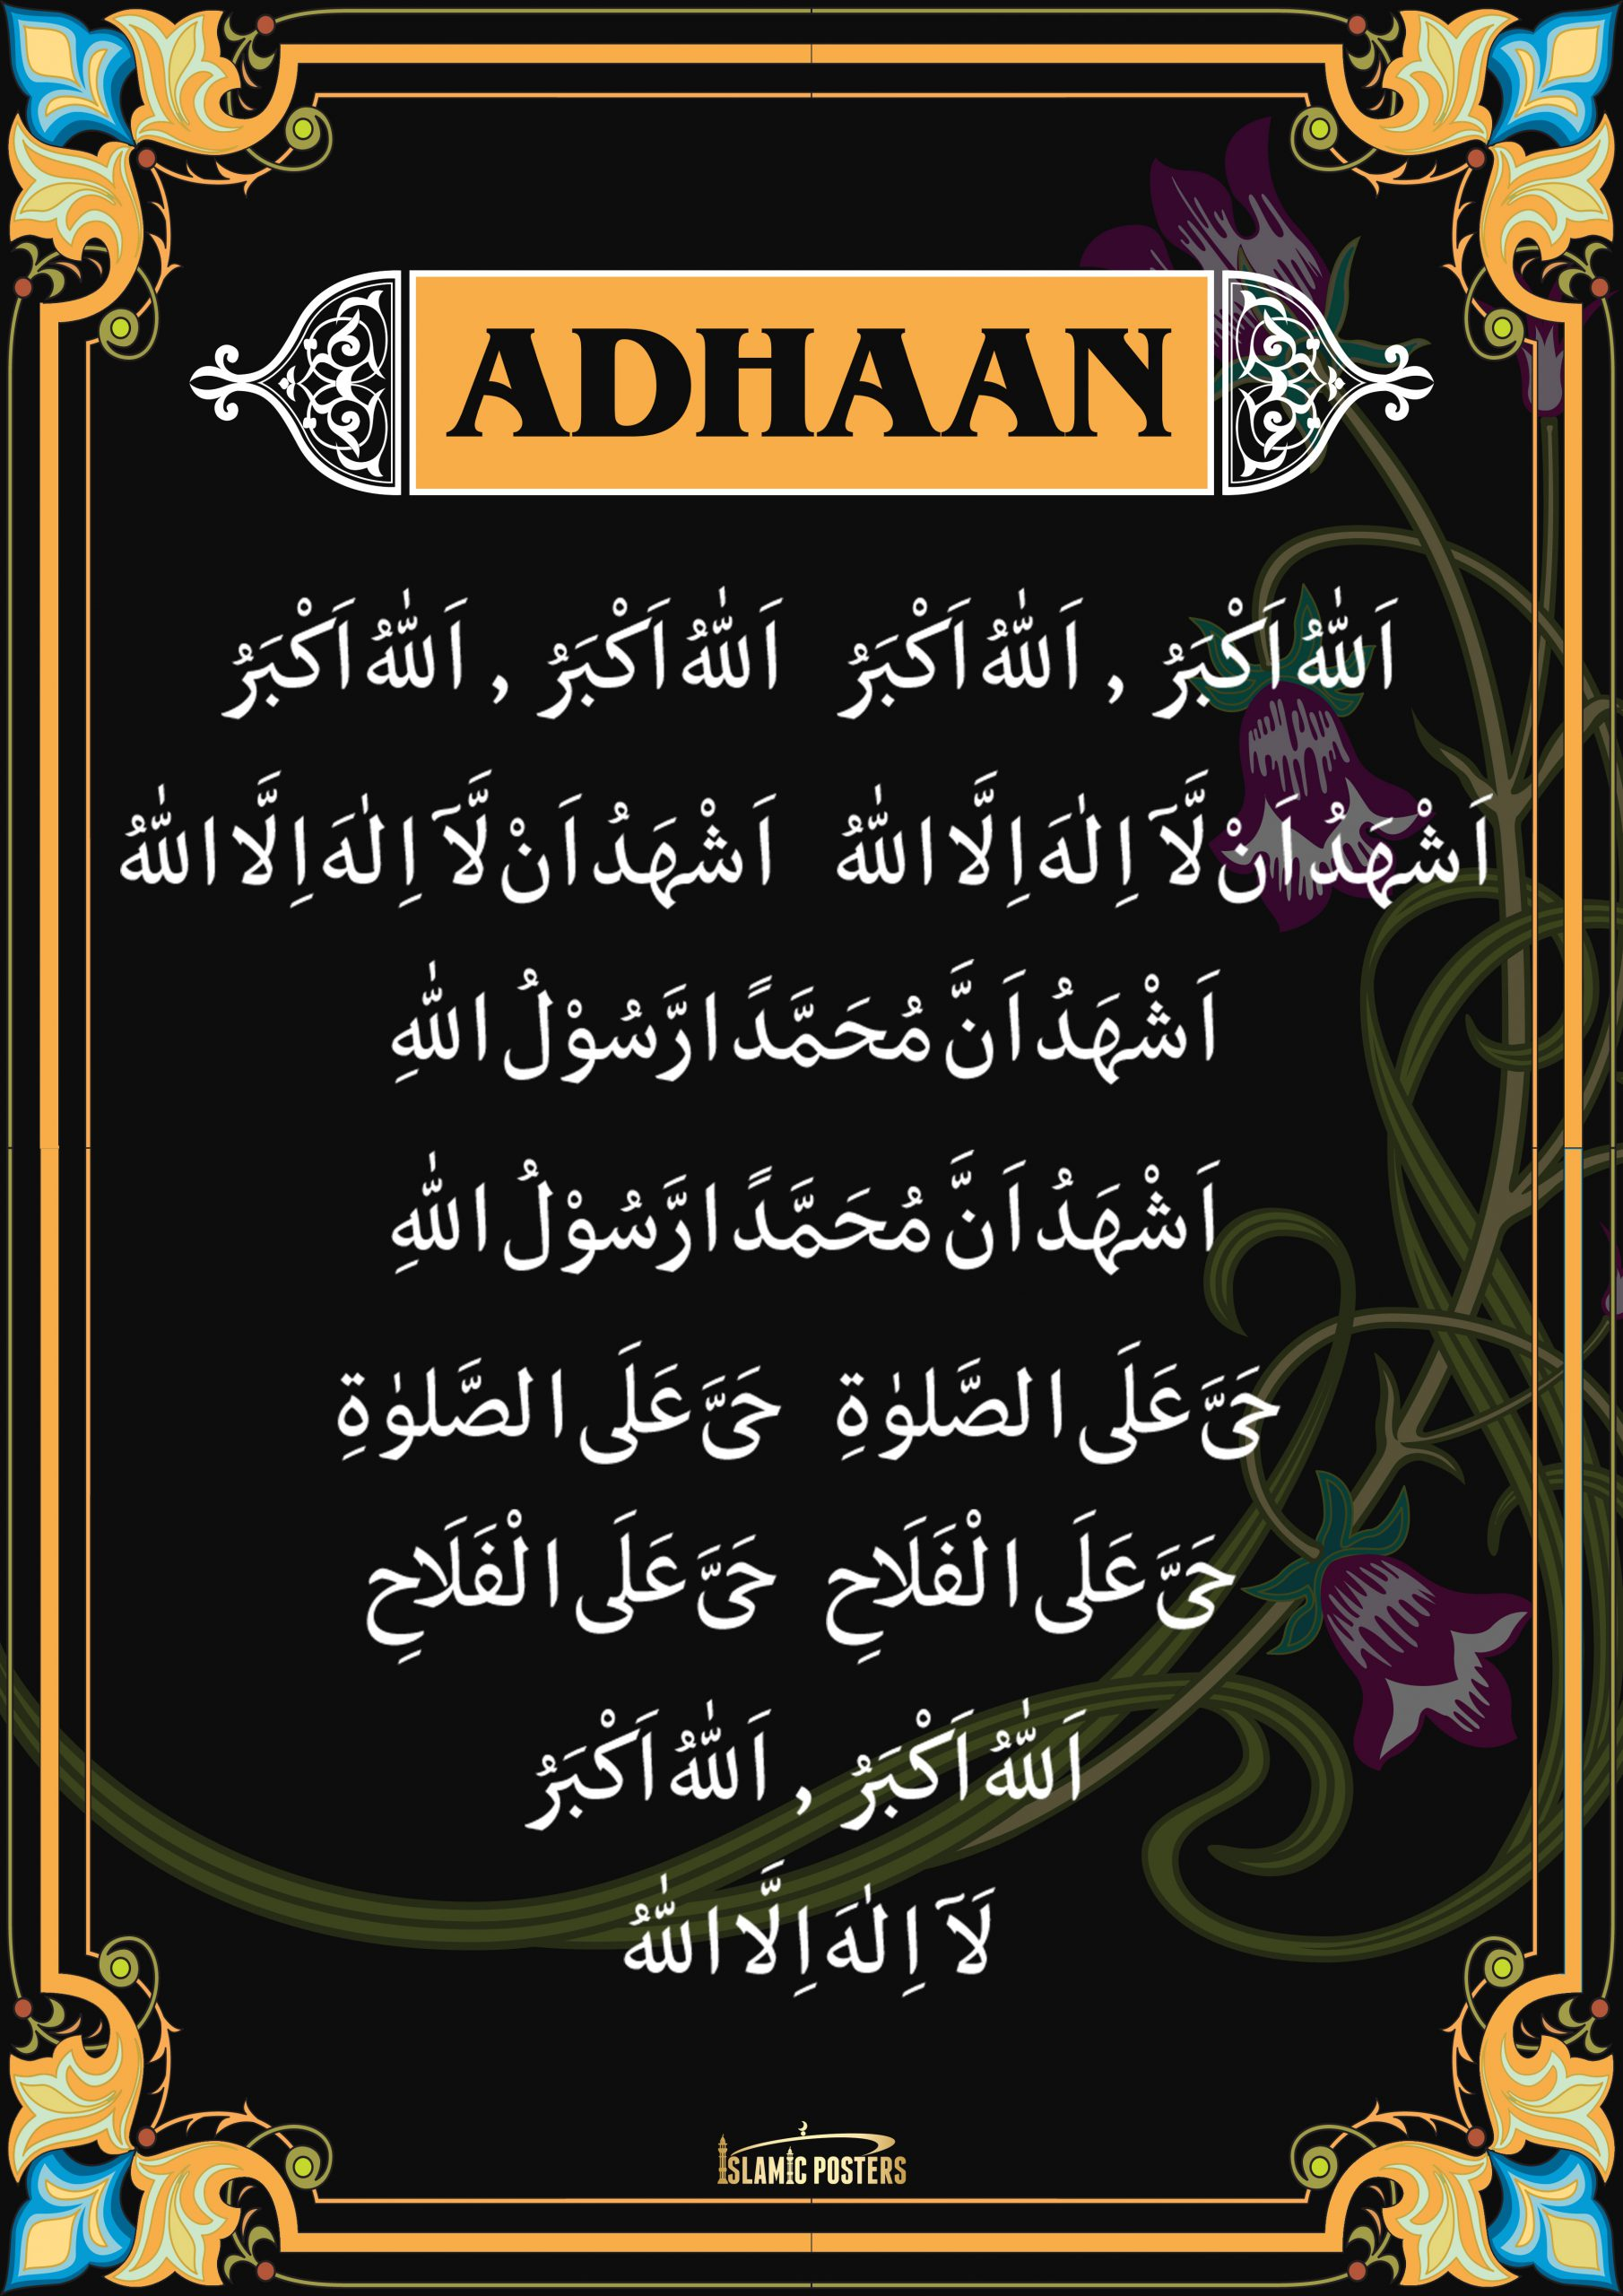 New 2 - Adhaan by islamic Posters